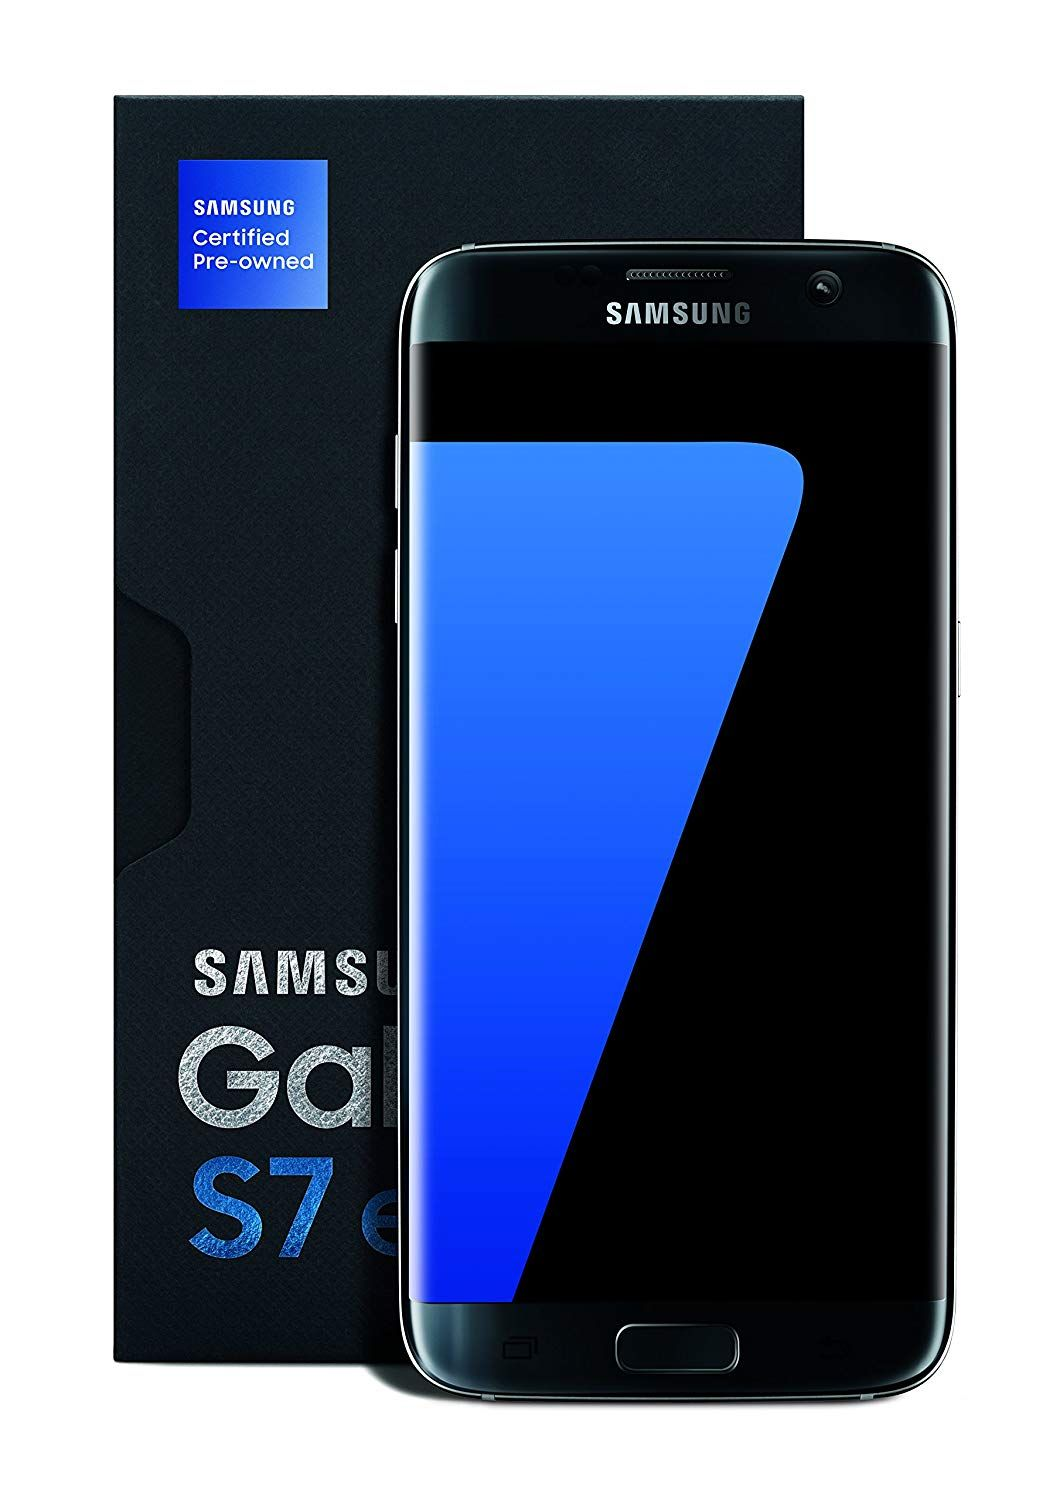 Is Available Samsung Galaxy S7 Edge Certified Pre Owned Factory Unlocked Phone 5 5 Screen 32gb Titan Samsung Galaxy S7 Edge Unlocked Cell Phones Samsung